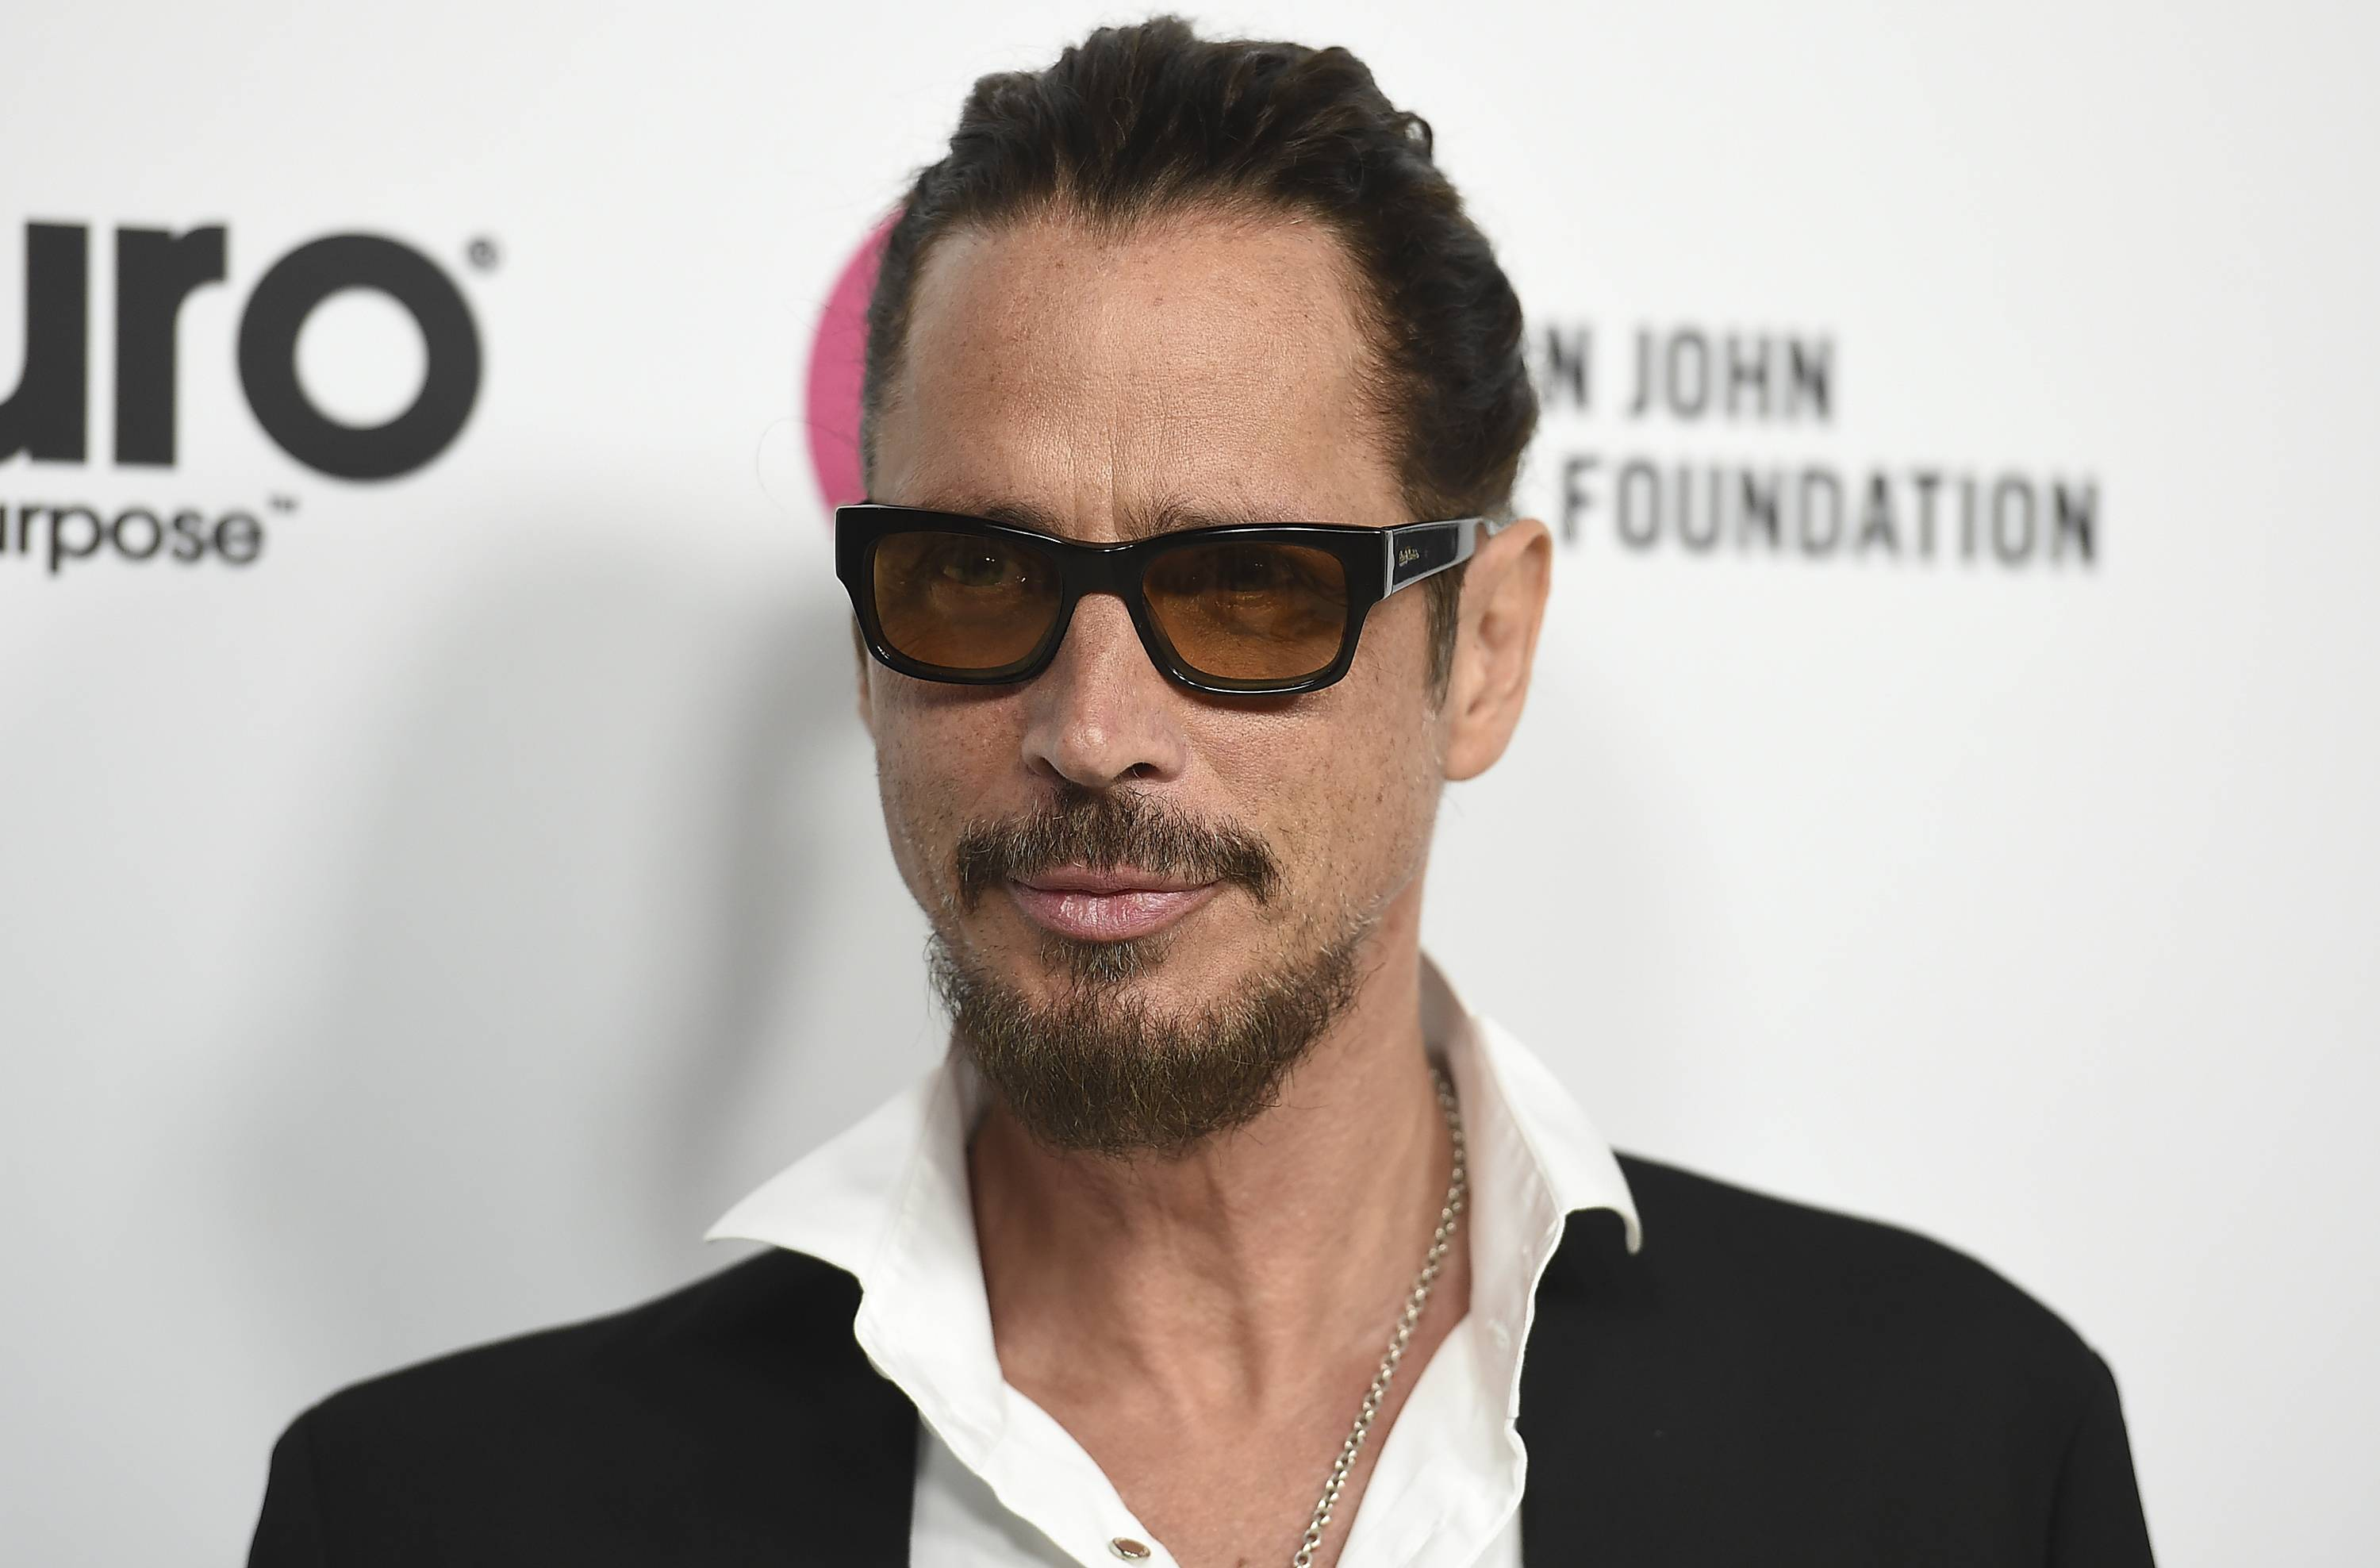 Chris Cornell, 52, who gained fame as the lead singer of the bands Soundgarden and Audioslave, died Wednesday night at a hotel in Detroit. Police said Thursday that his death is being investigated as a possible suicide.